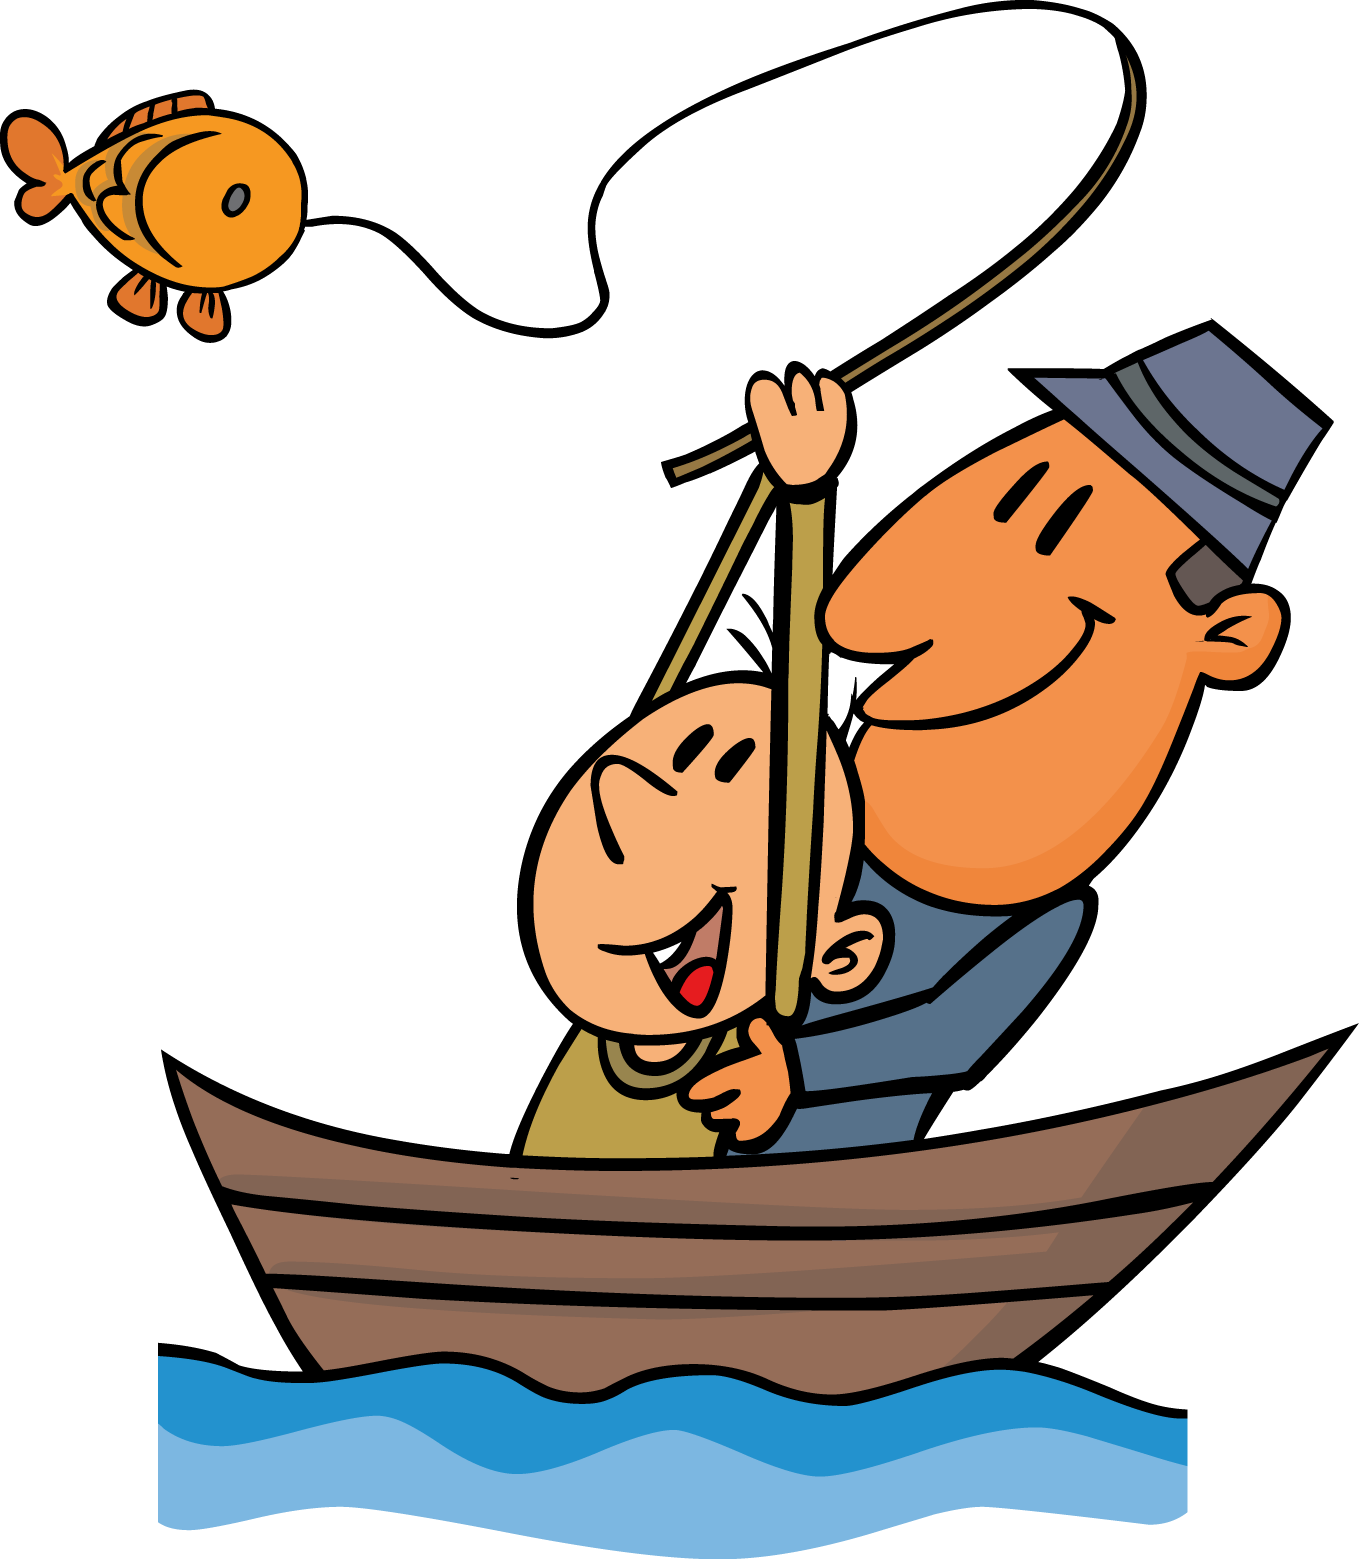 Fisherman clipart go fish #11